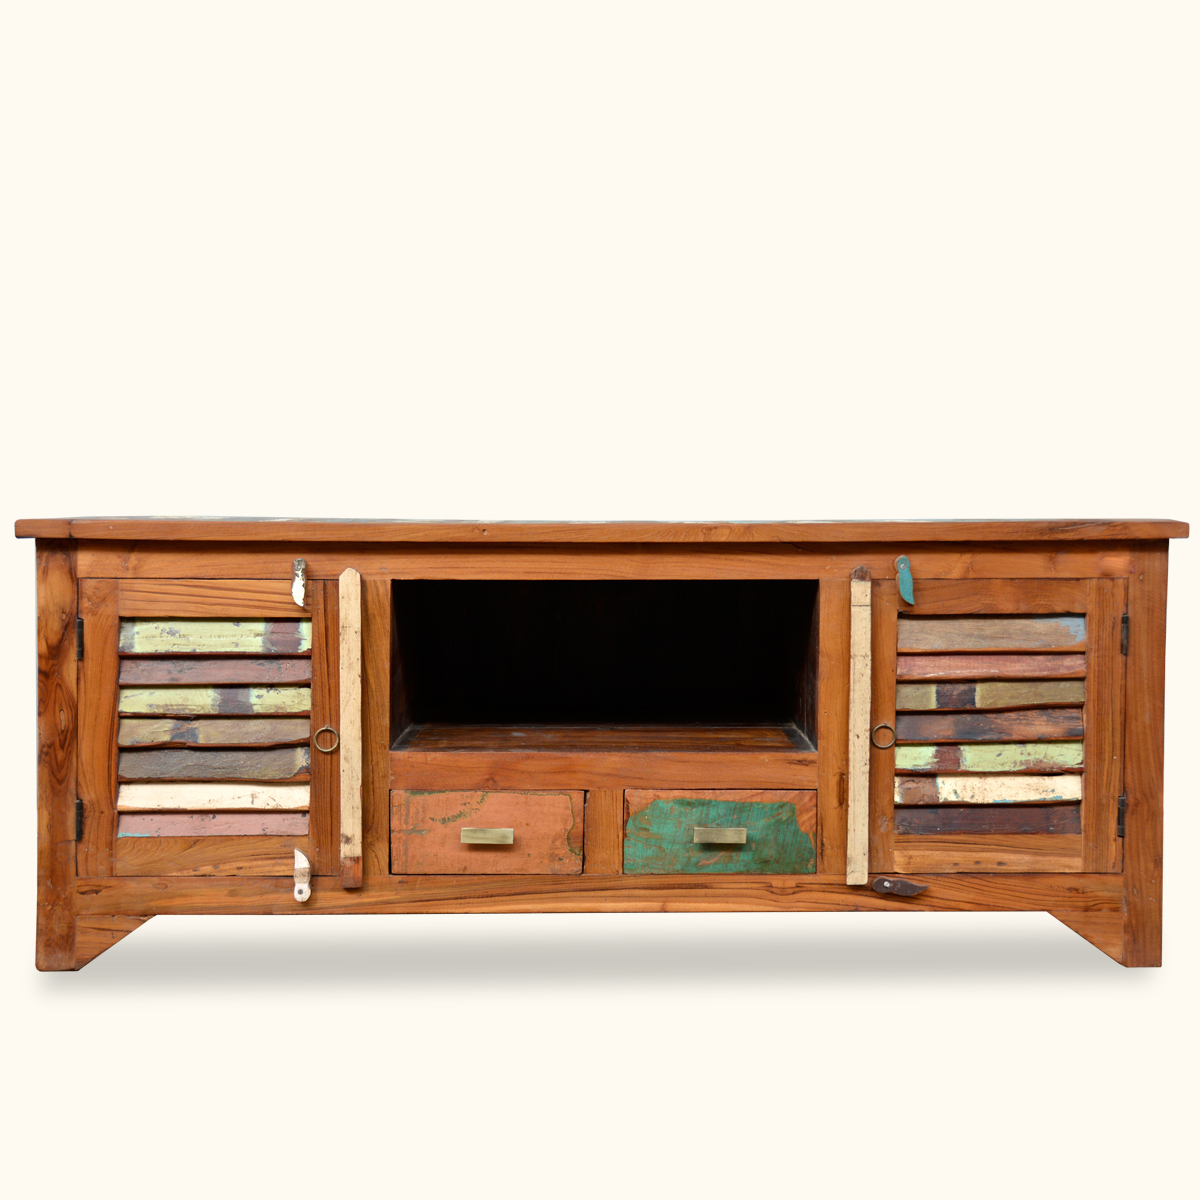 Reclaimed Media Console Rustic Entertainment Center Wooden Cabinet Furniture Ebay